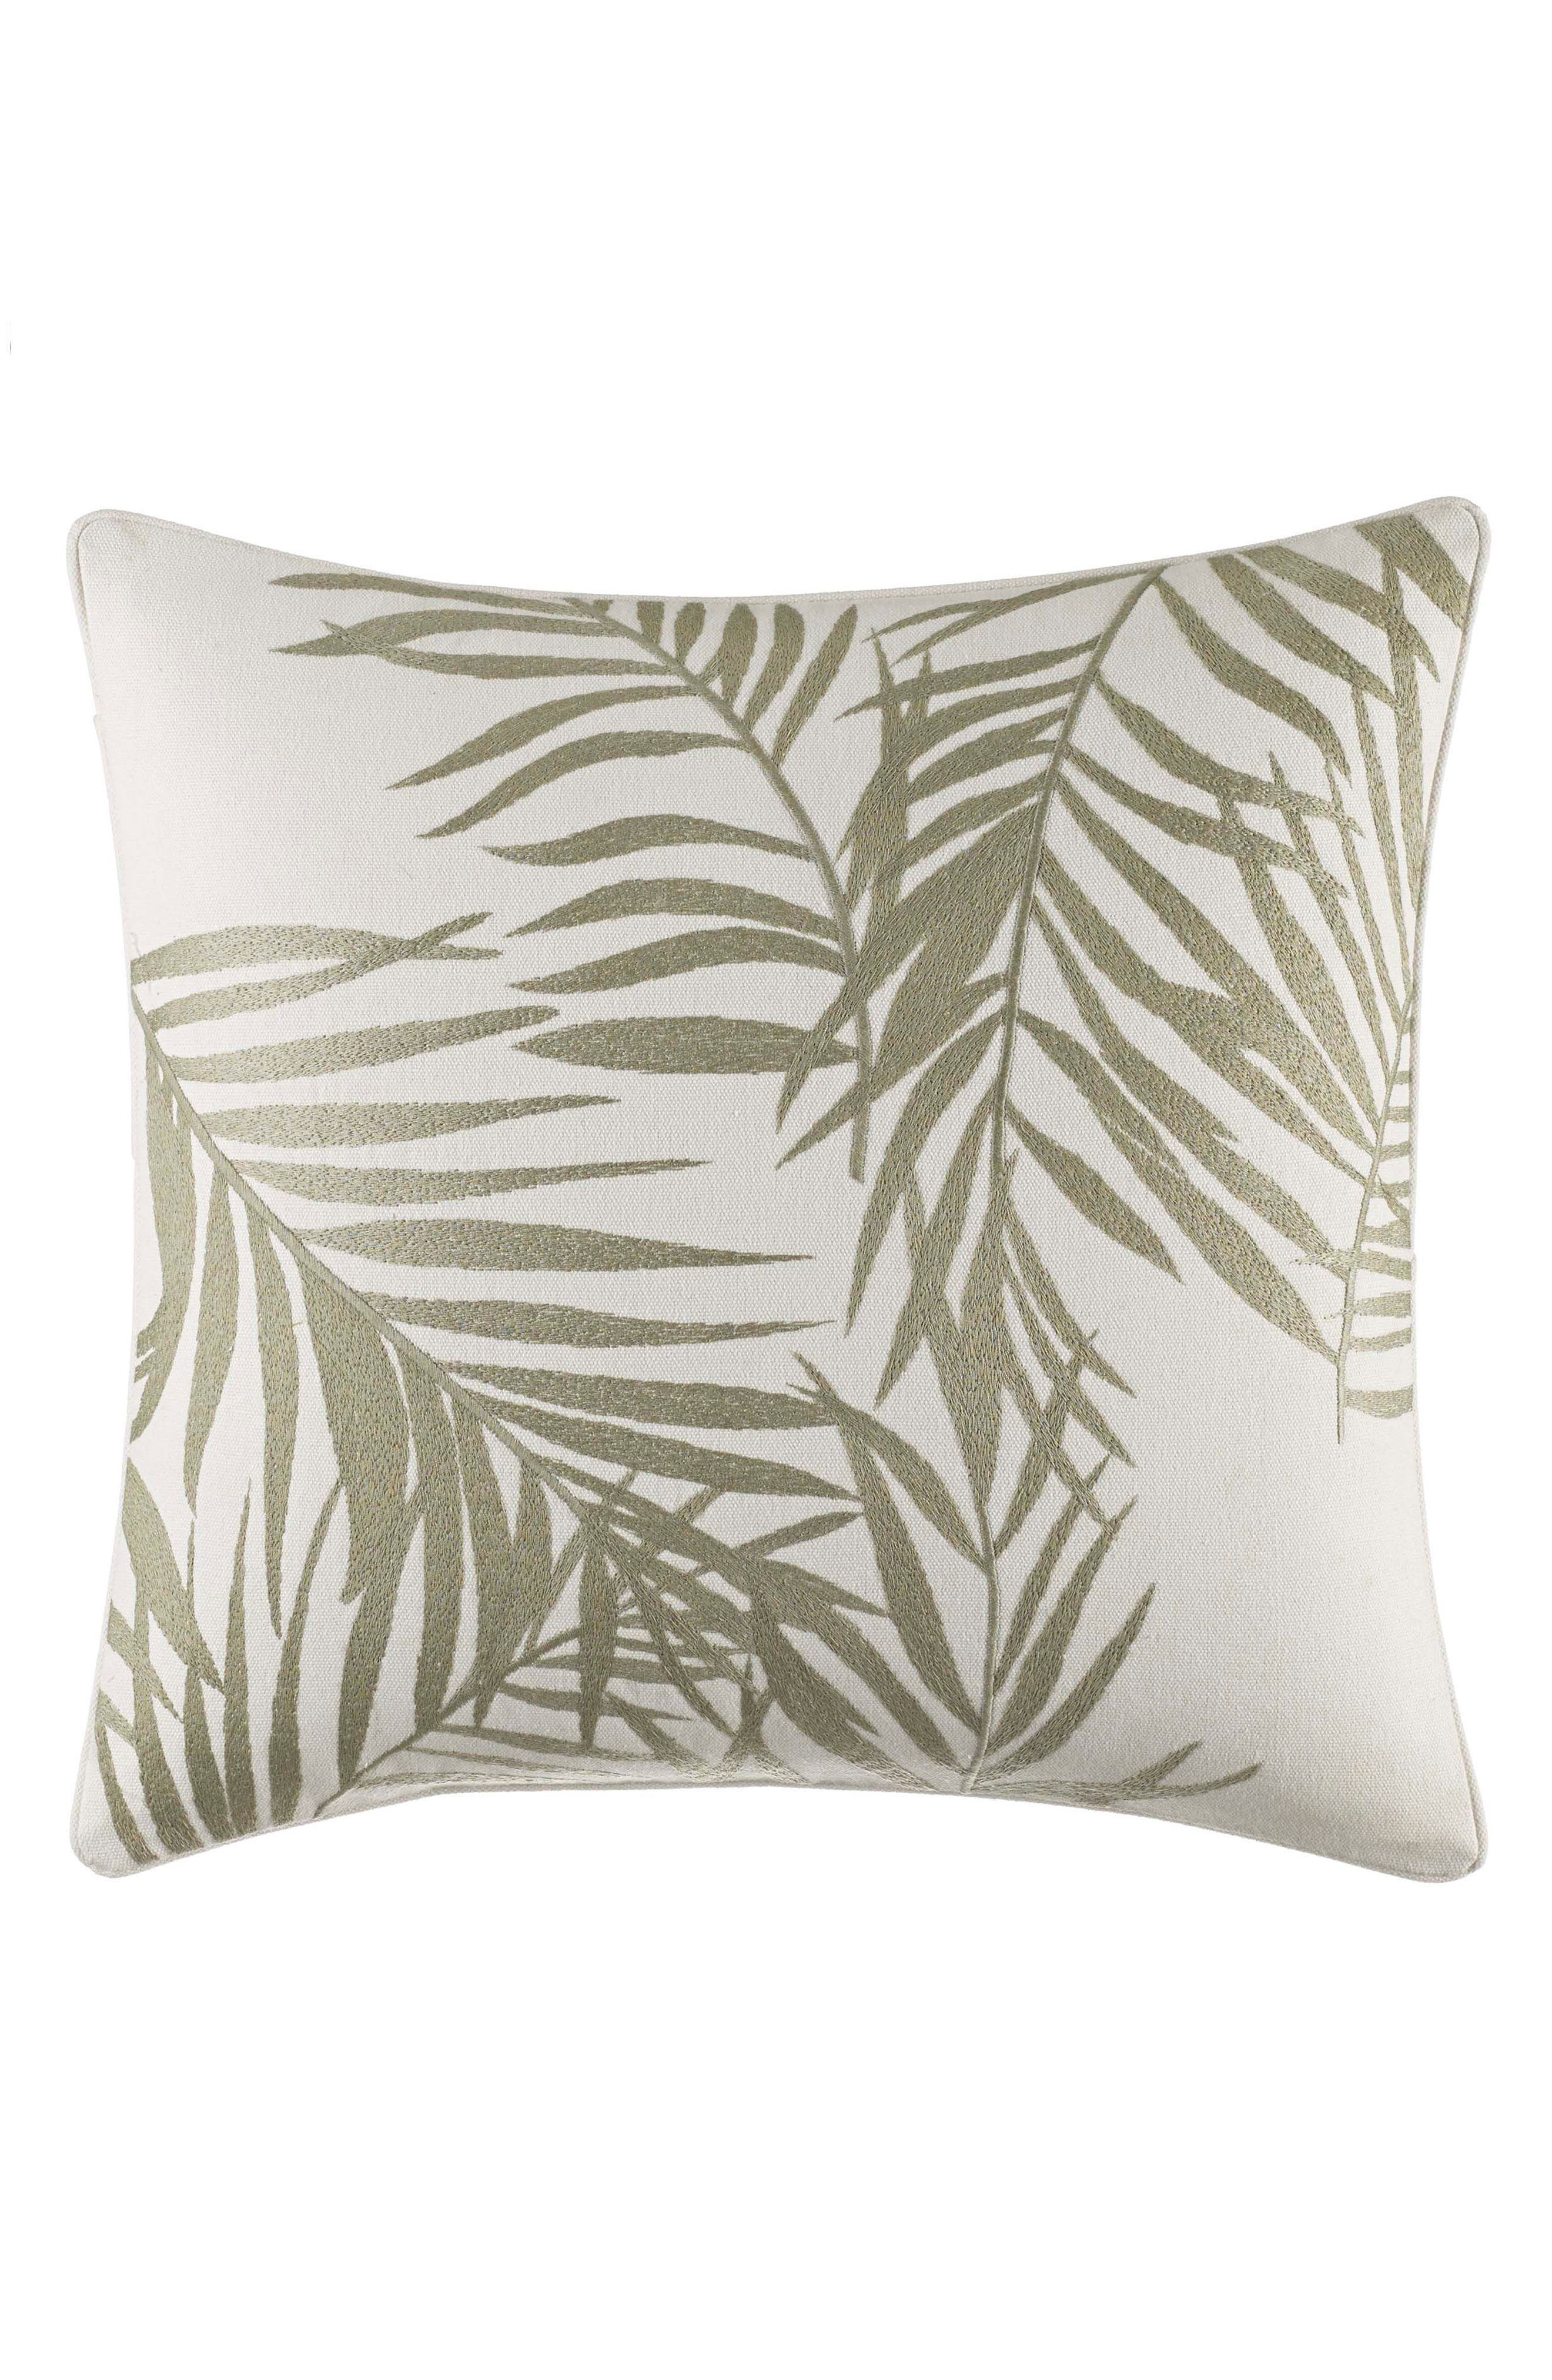 Palms Away Embroidered Accent Pillow,                             Main thumbnail 1, color,                             Light Beige